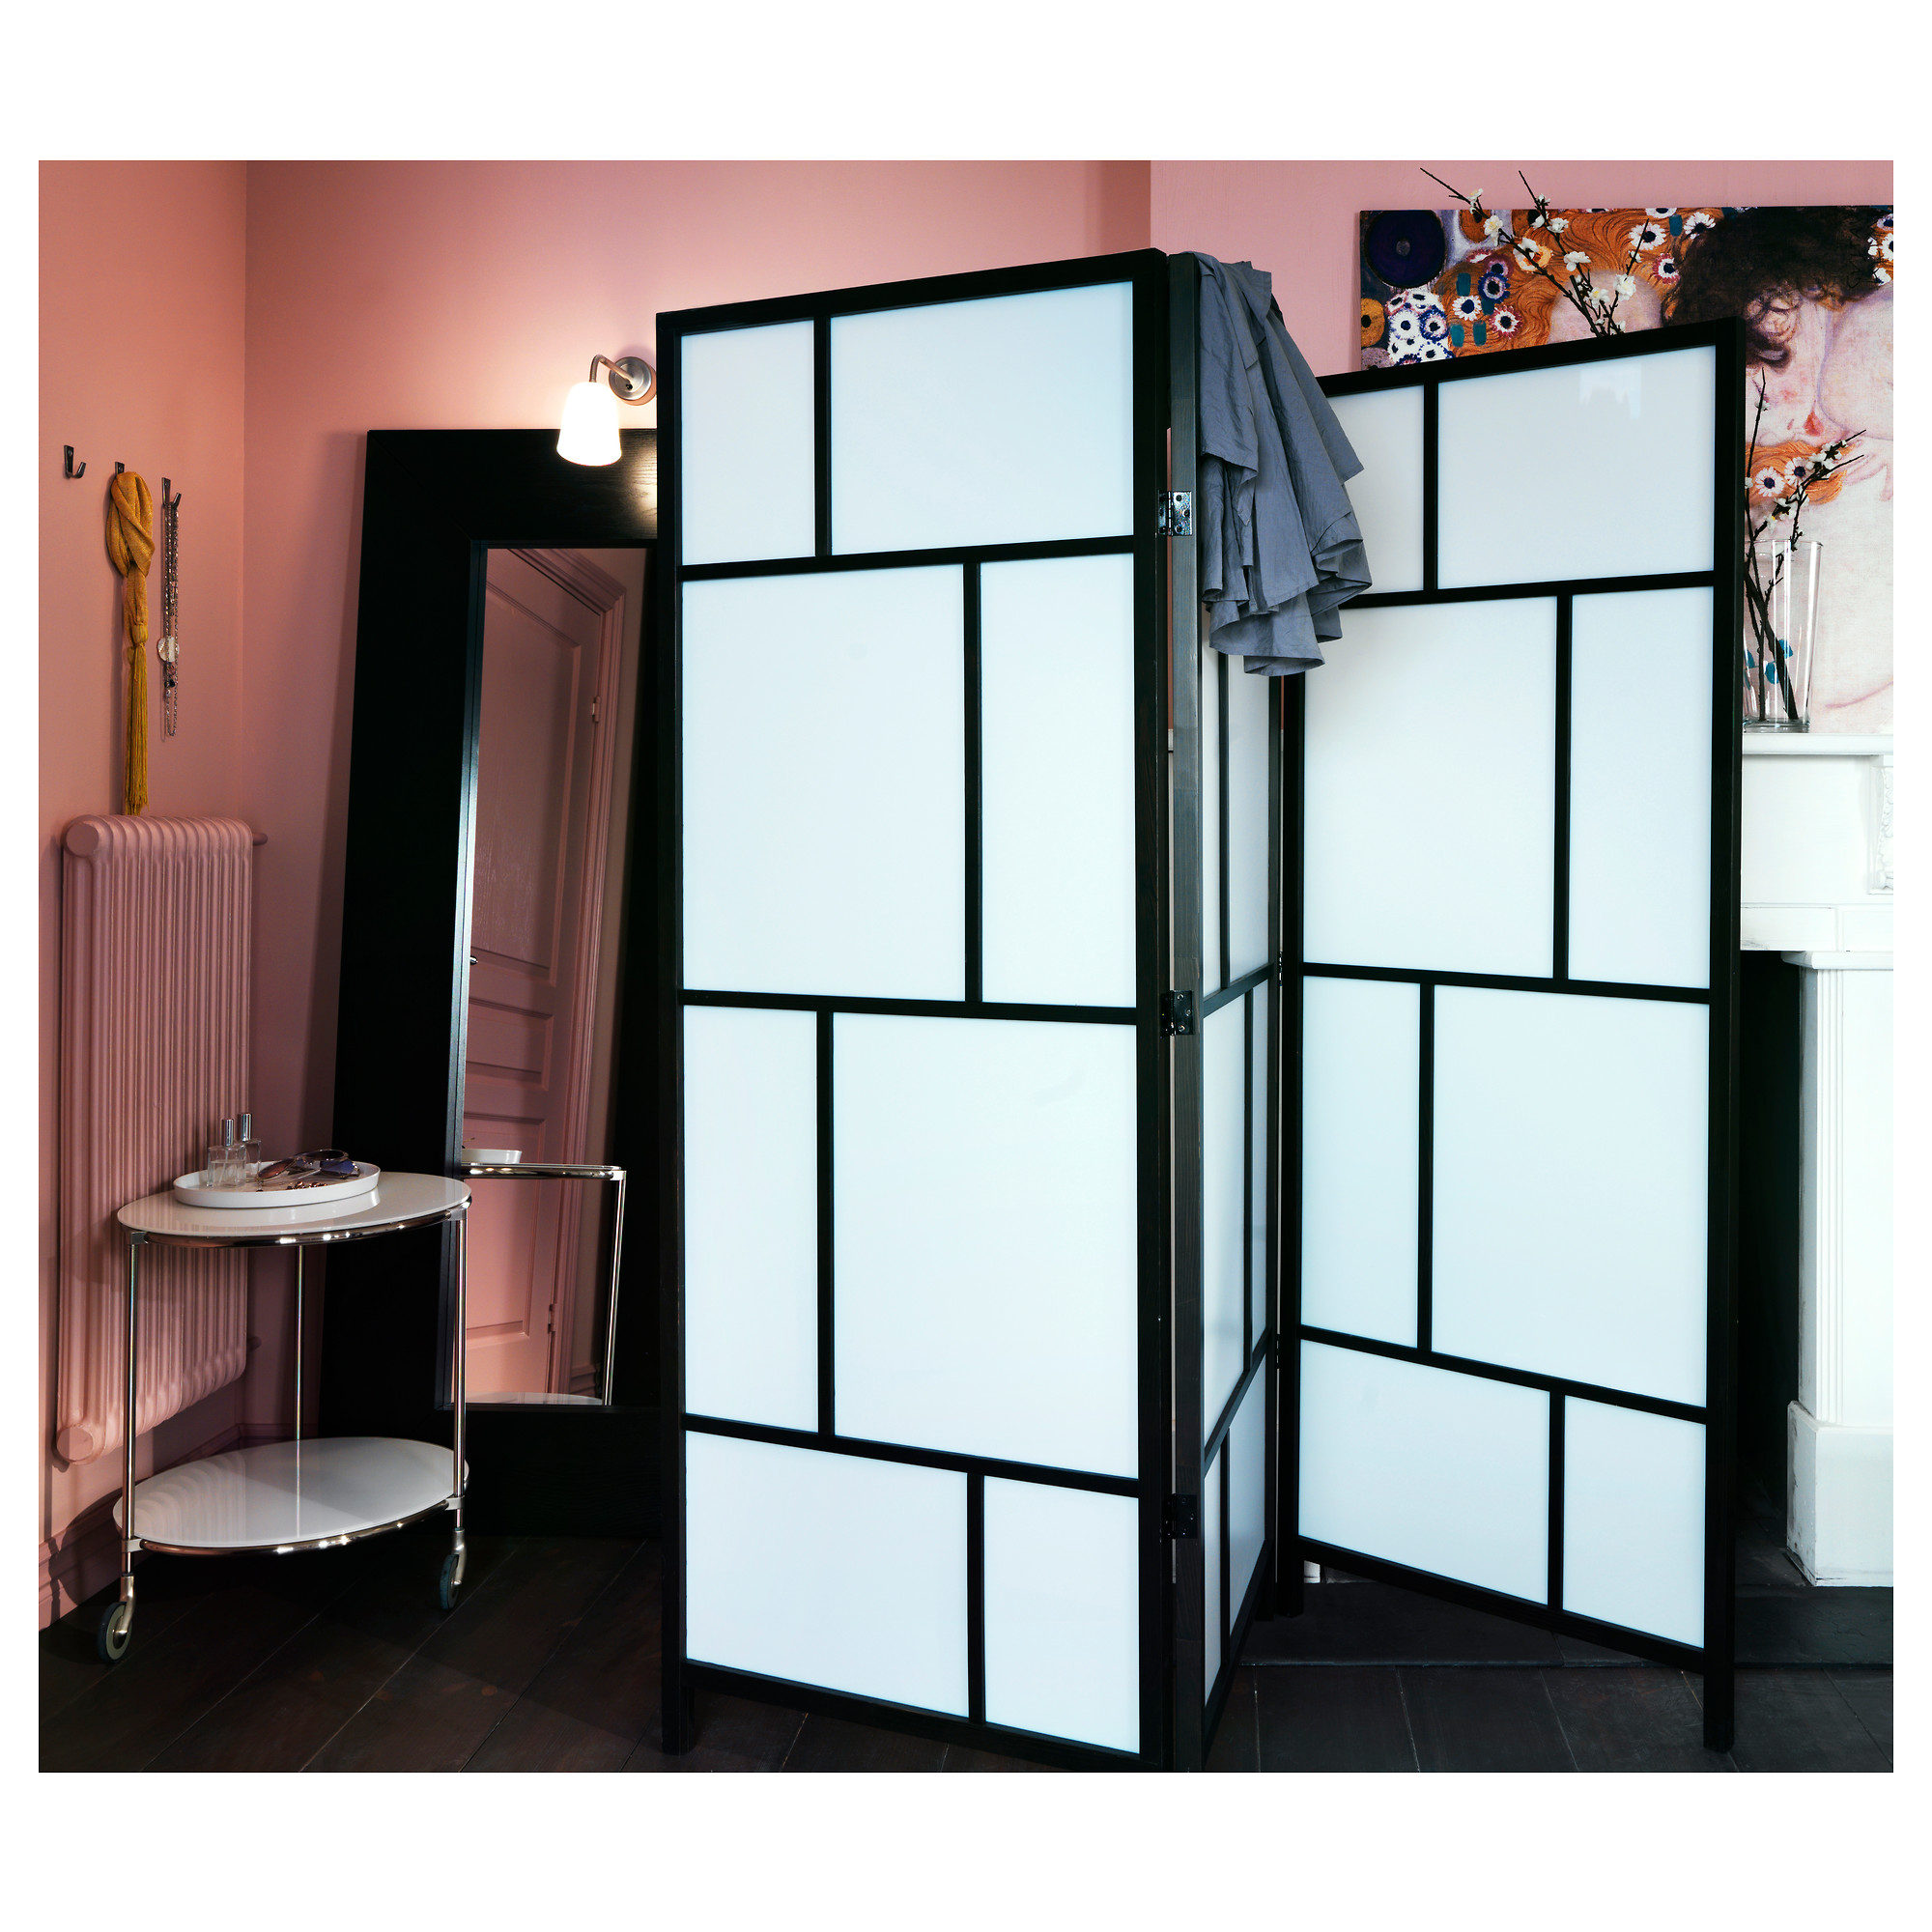 Great Room Separators Ikea for Any Room in Your Home: Soundproof Room Dividers | Room Separators Ikea | Tri Fold Room Divider